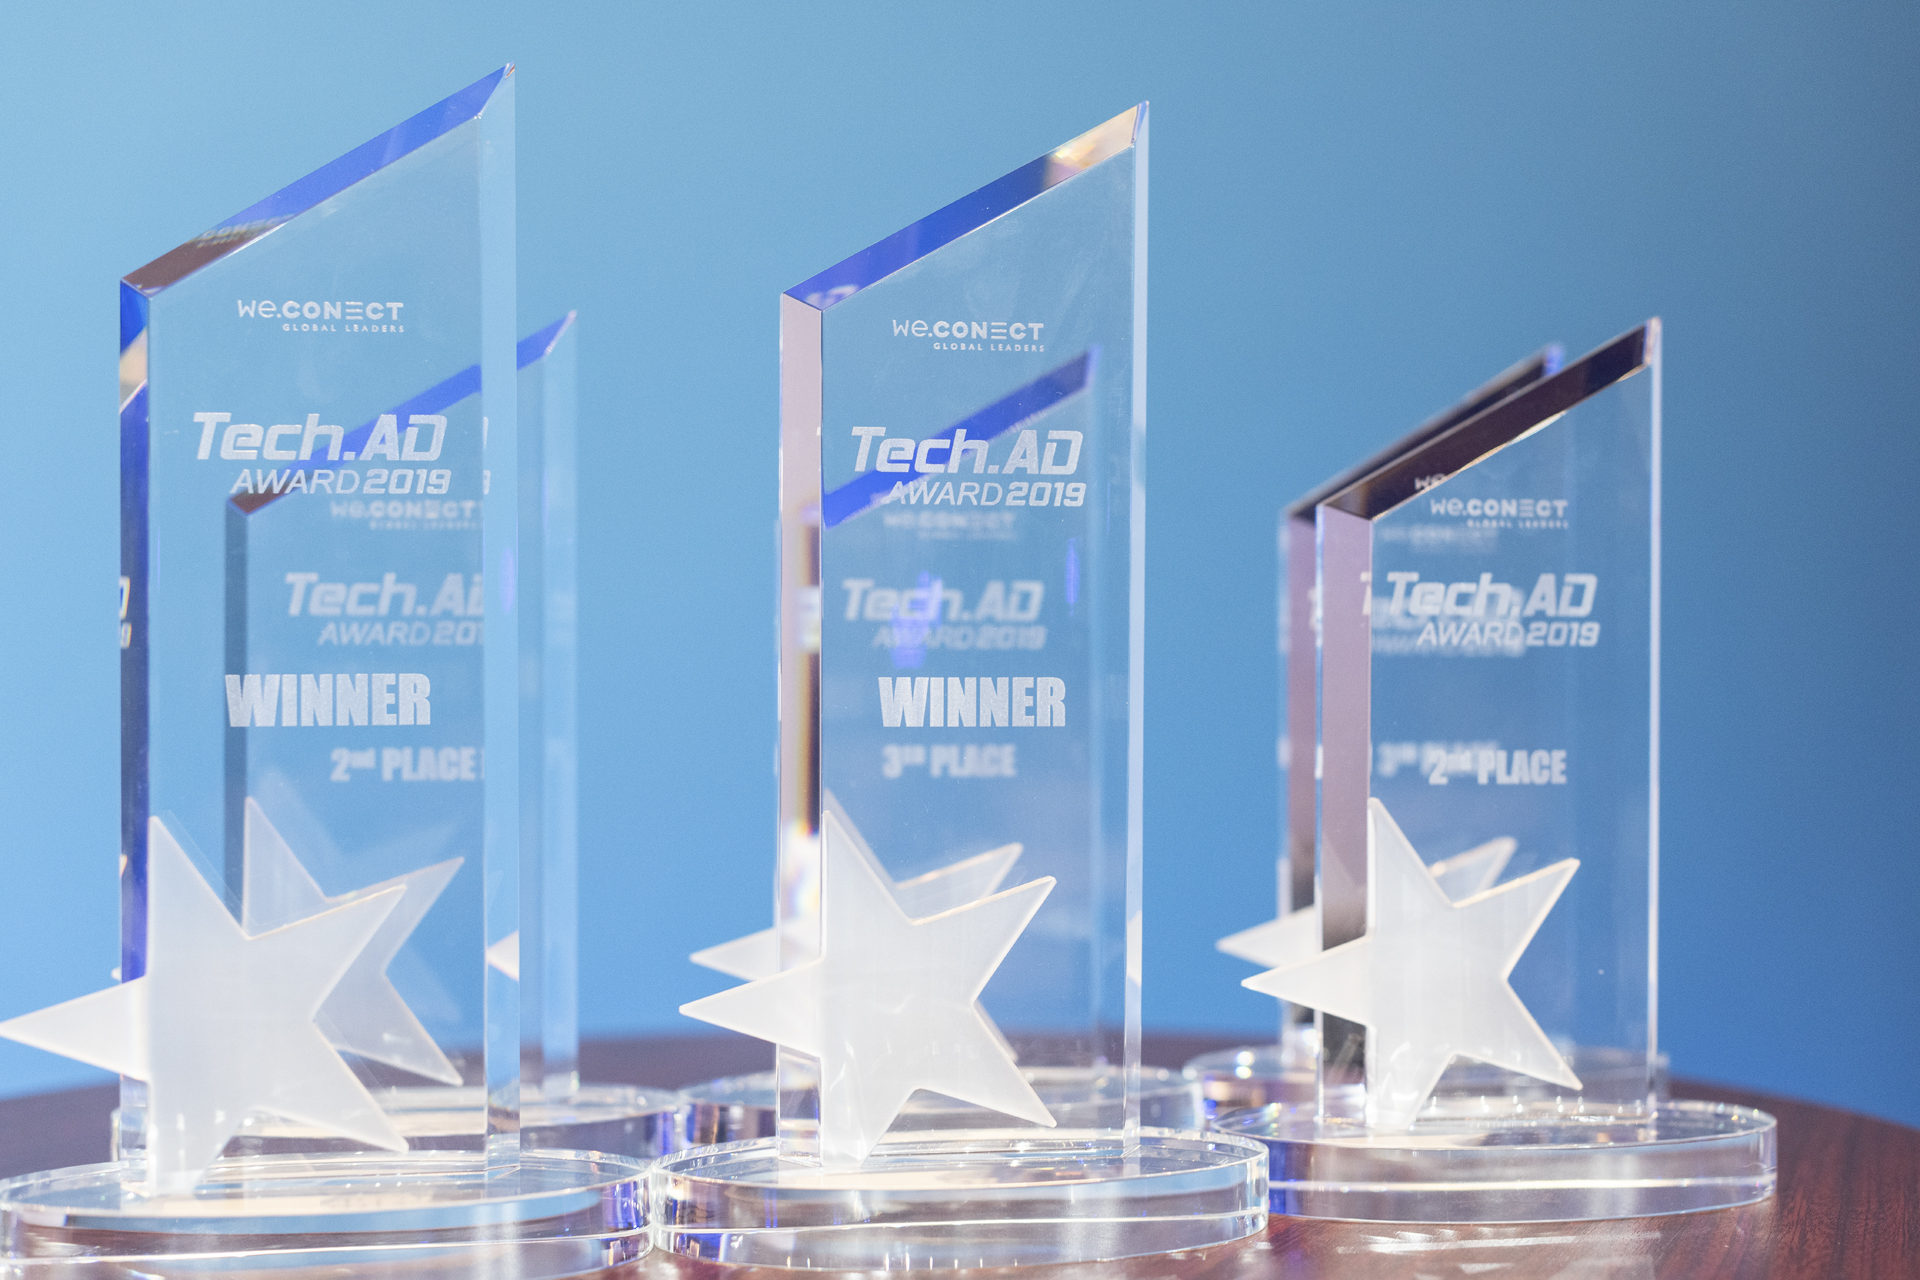 Award trophies Tech.AD USA